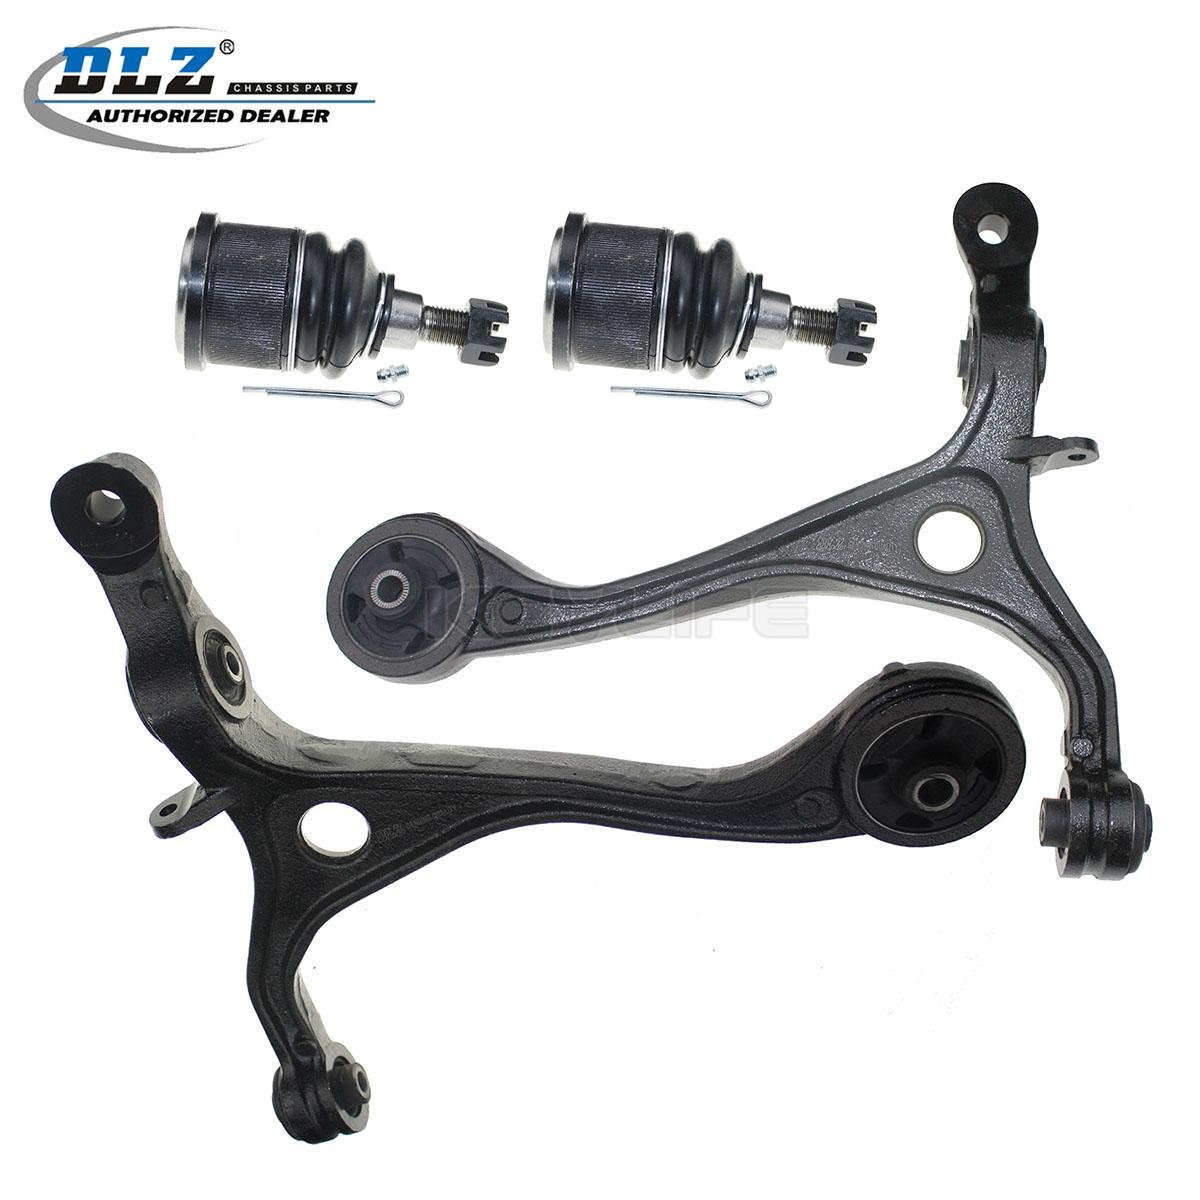 84 Honda Accord >> DLZ Front Lower Ball Joint Control Arm Kit Suspension For 2003-2007 Honda Accord | eBay